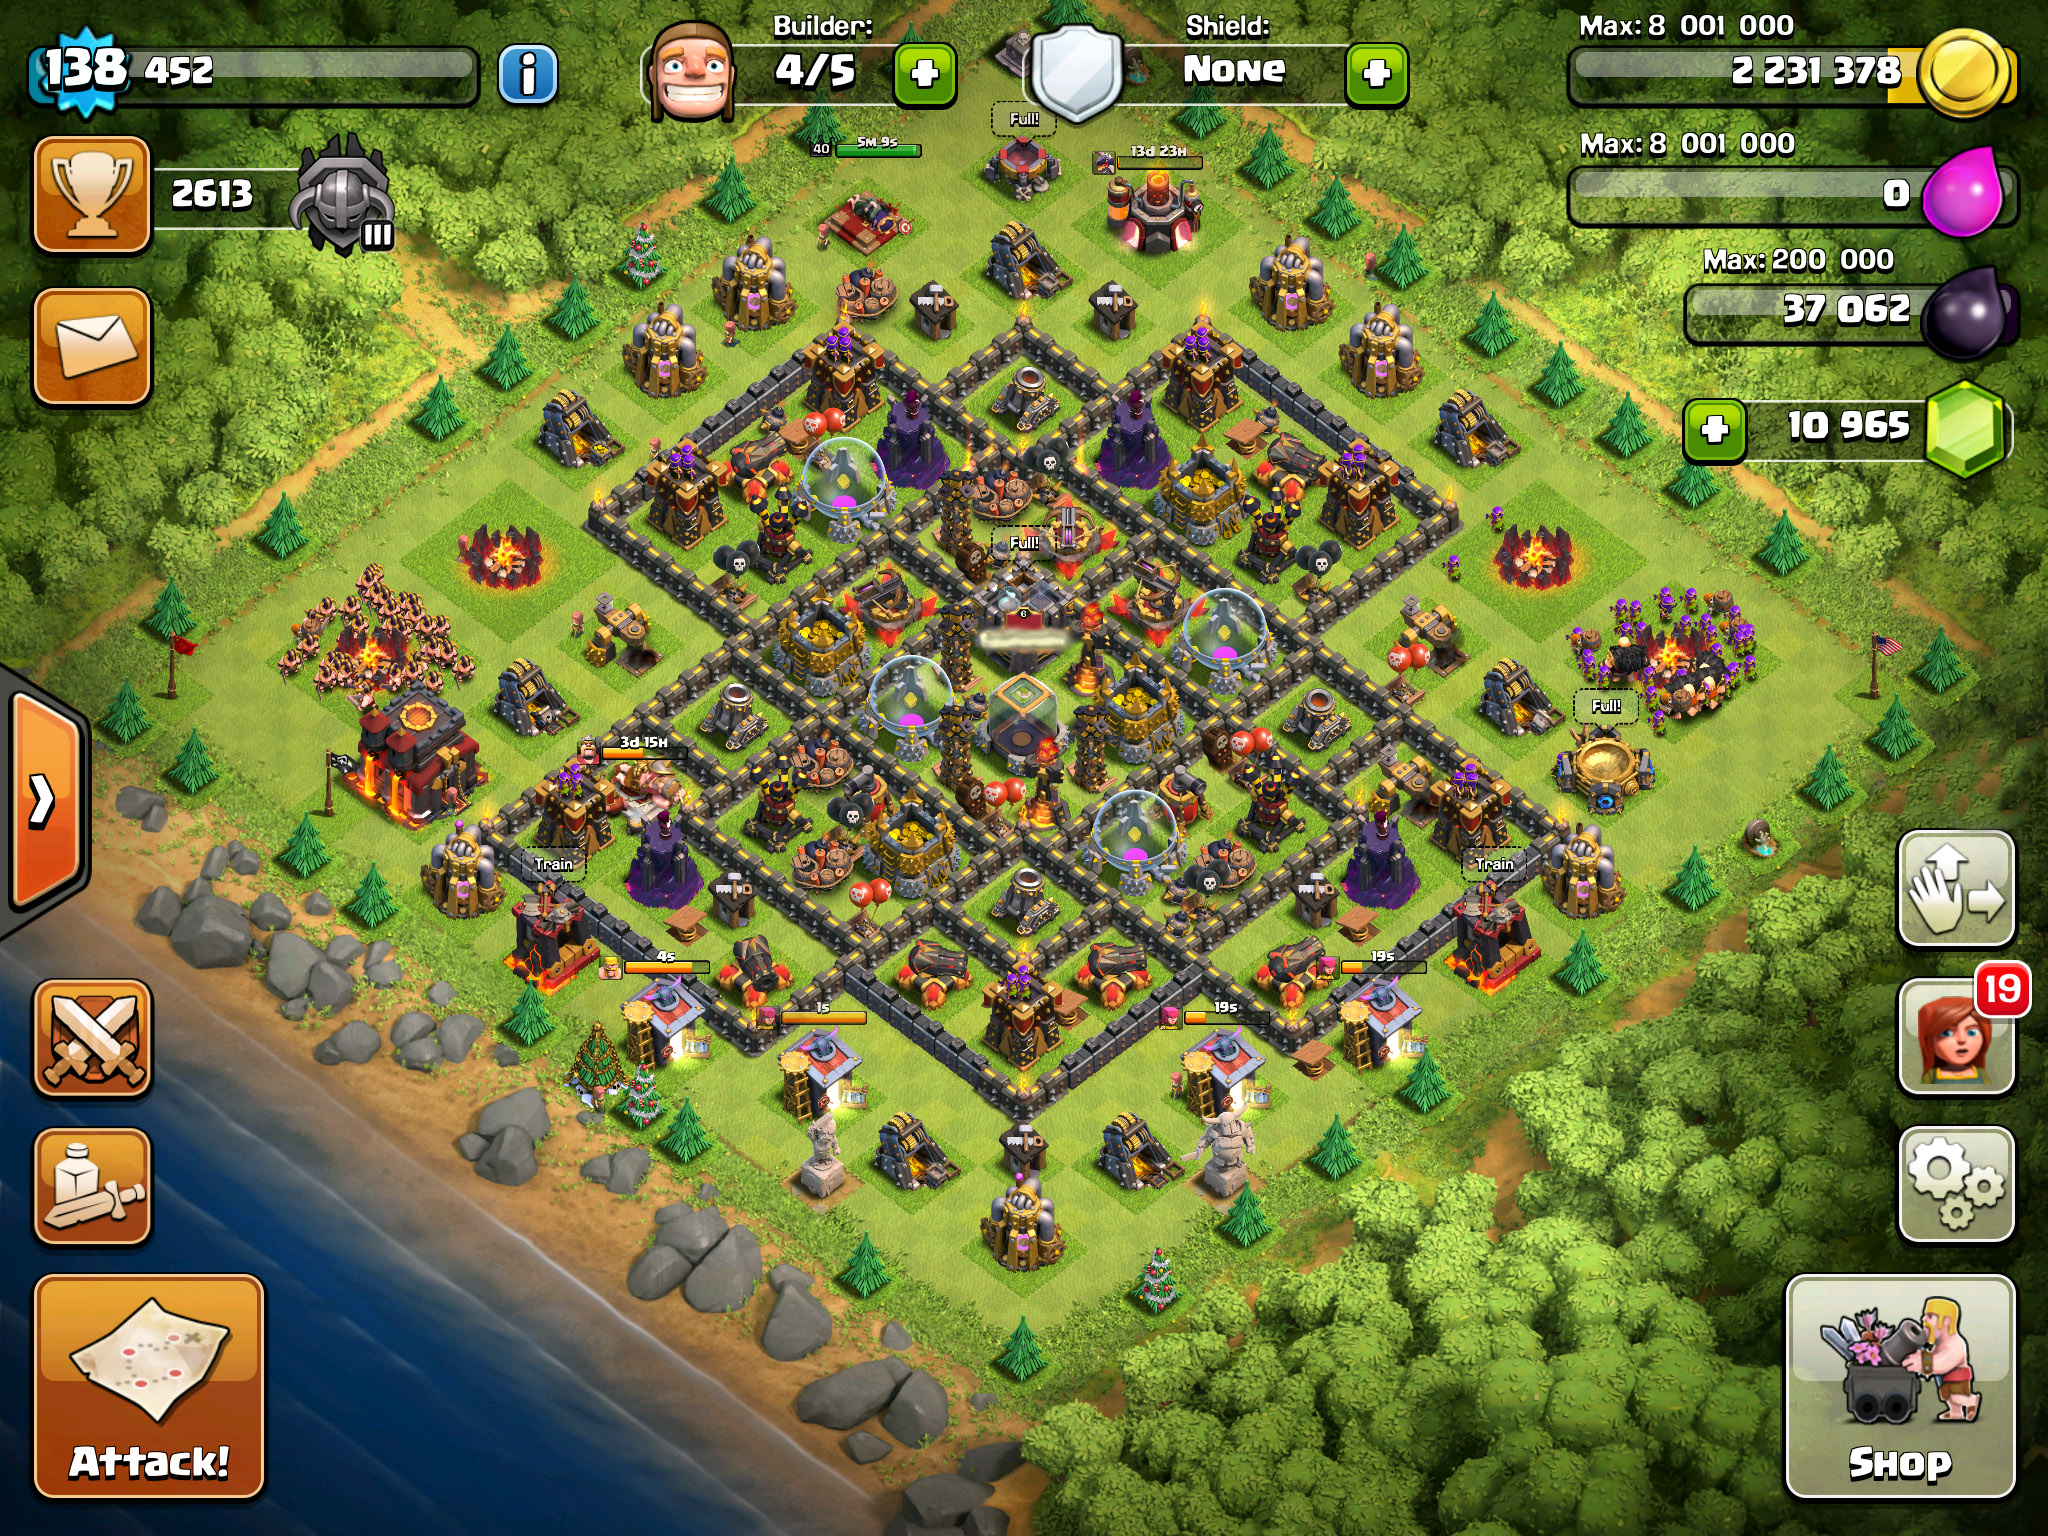 LVL10 TH Base